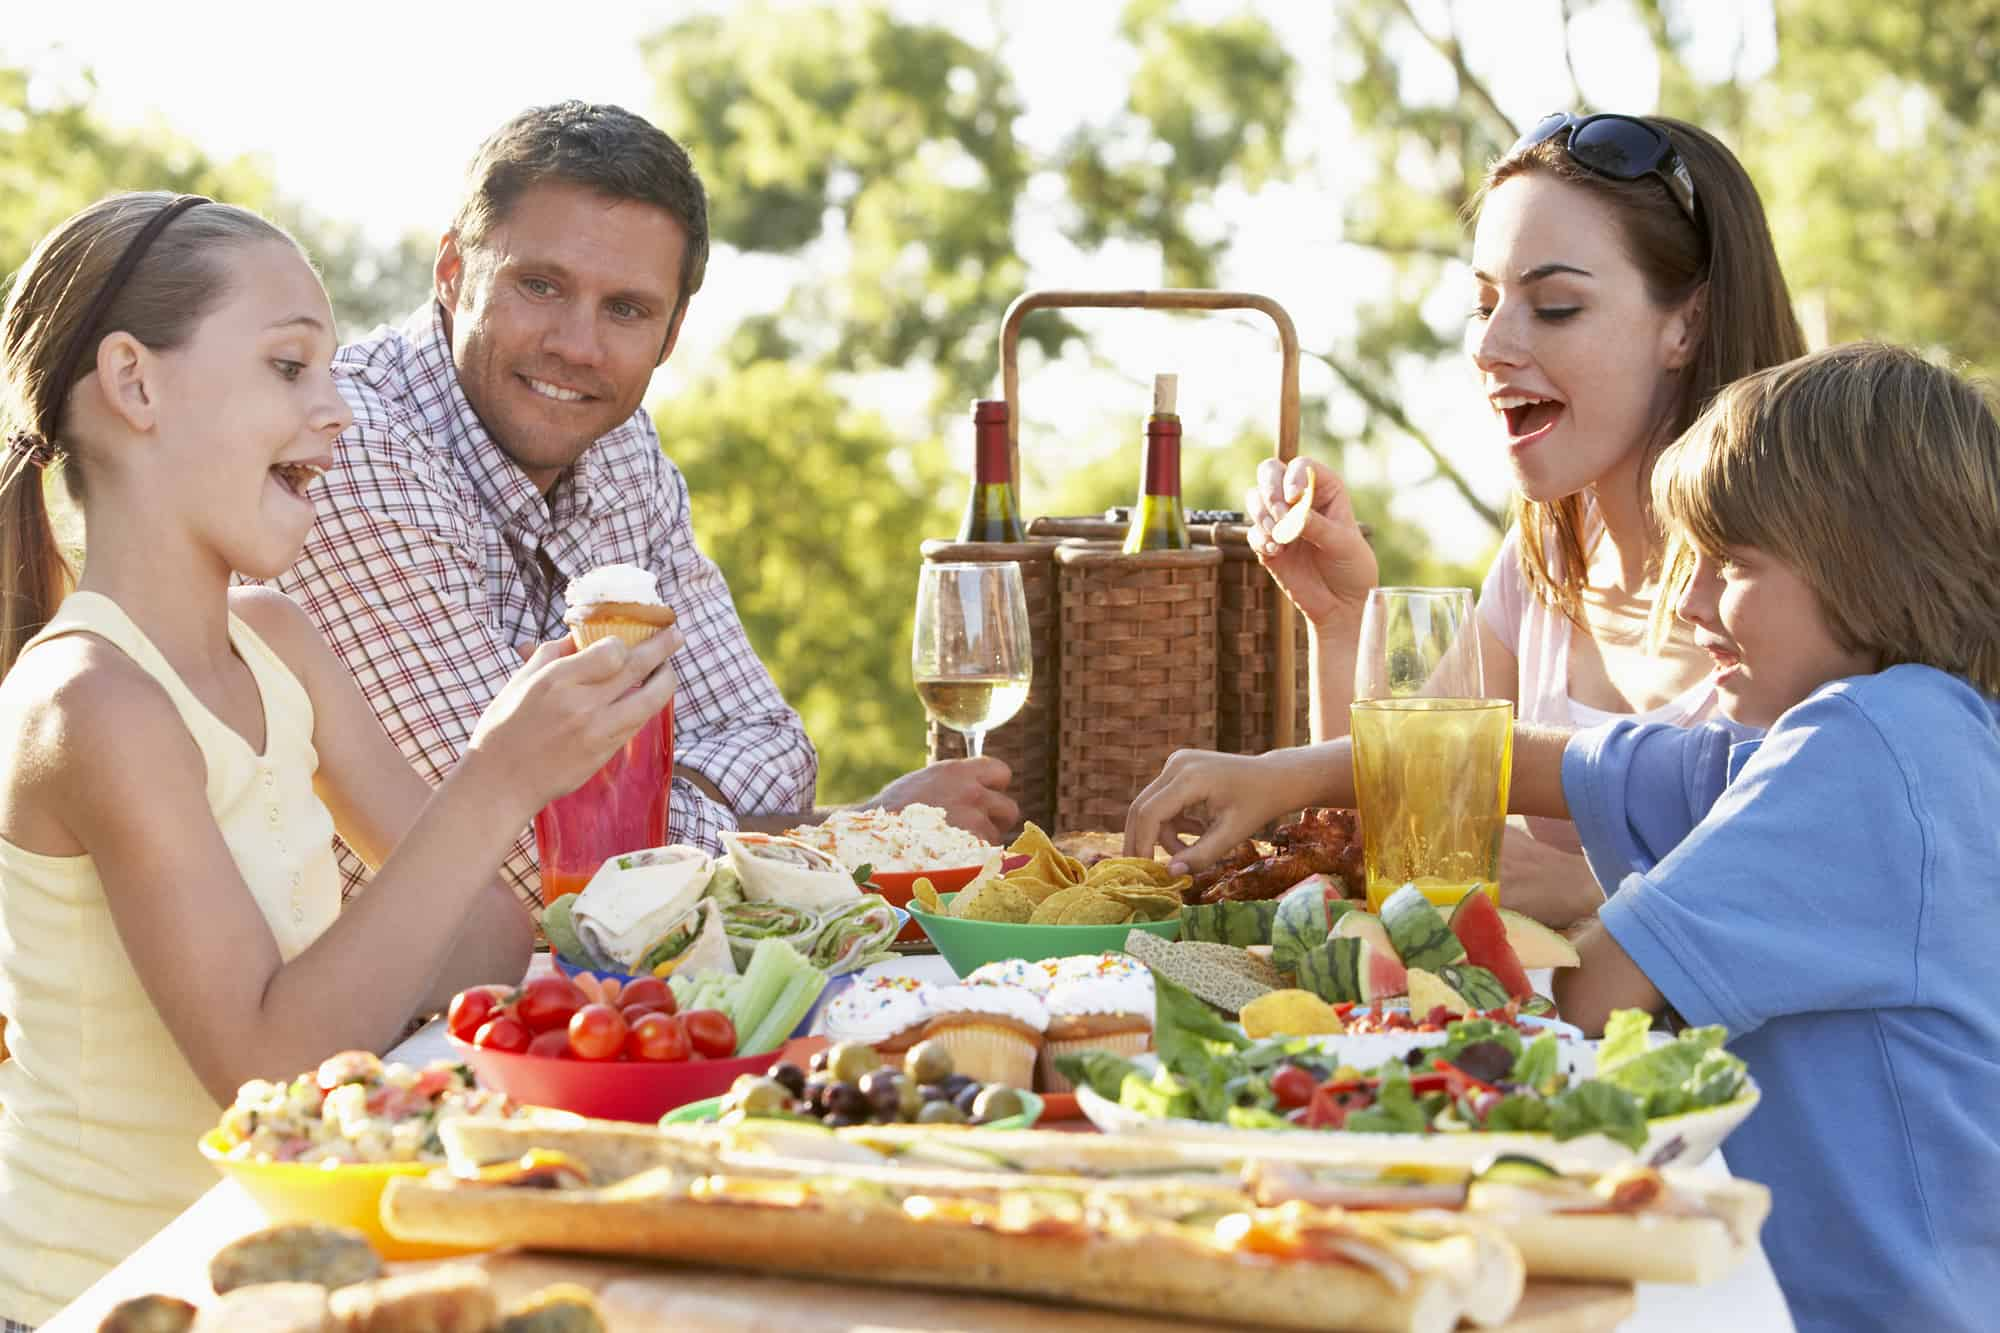 family eating a picnic meal together